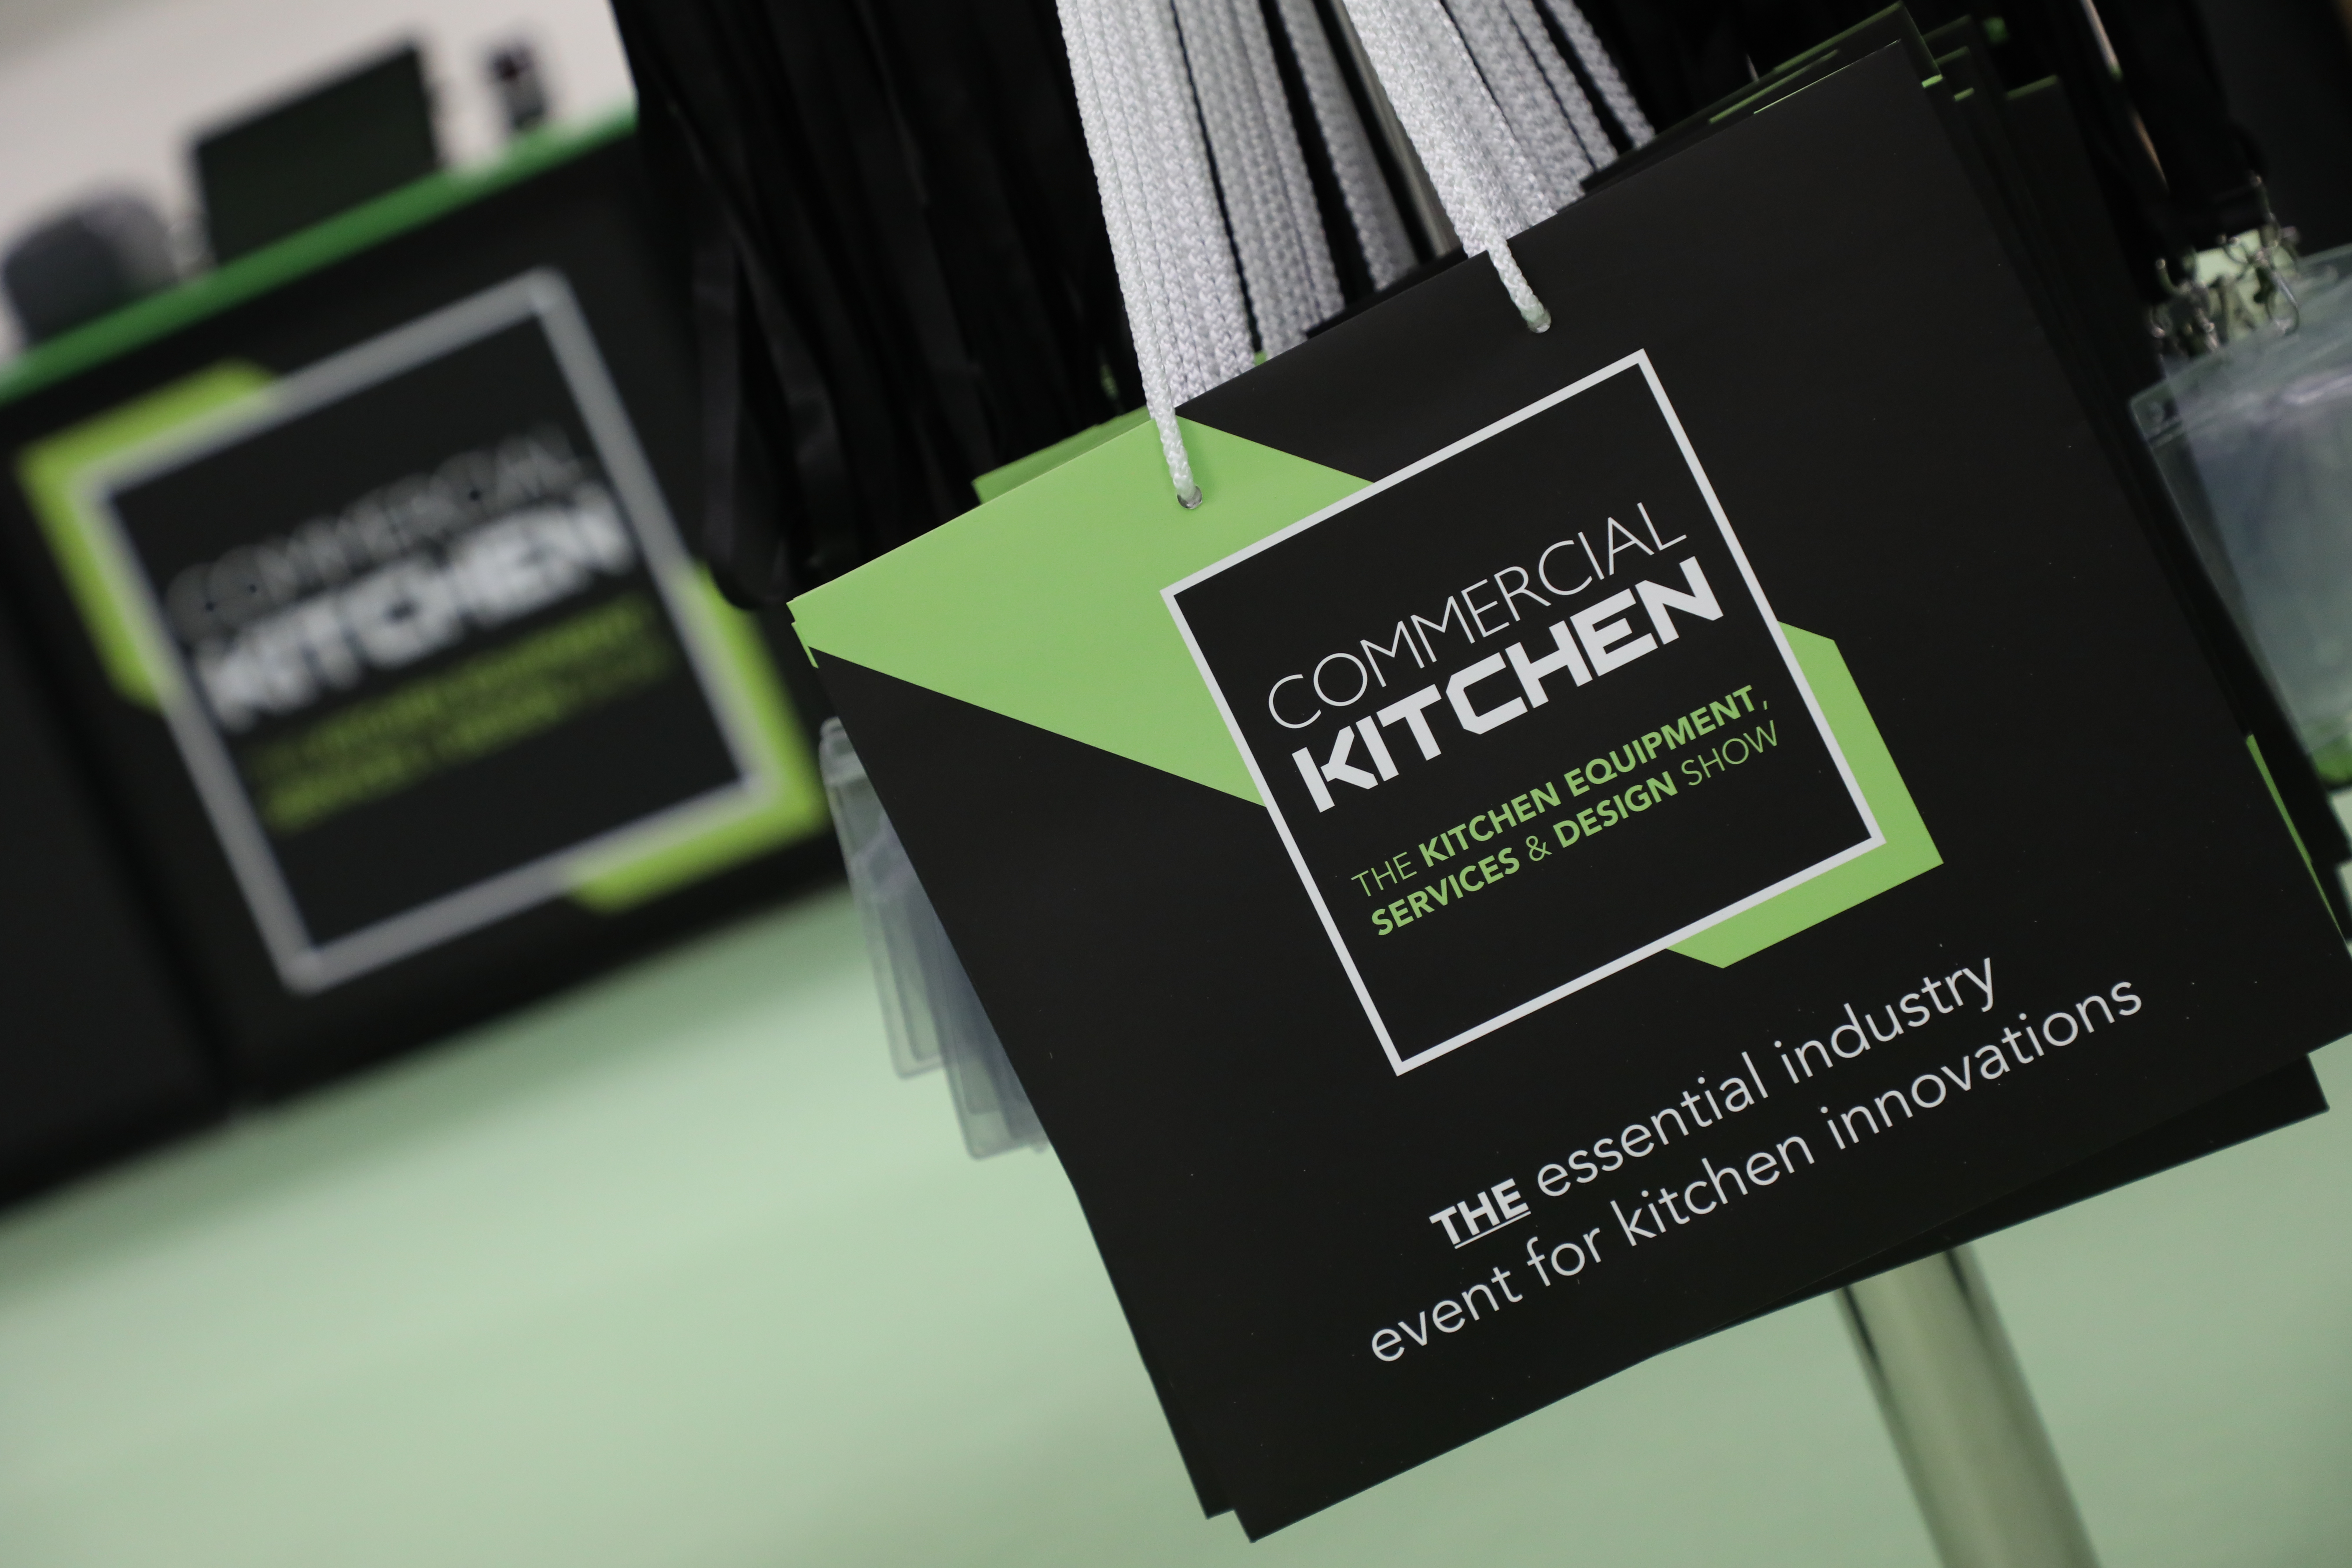 From Strength To Strength Commercial Kitchen Receives